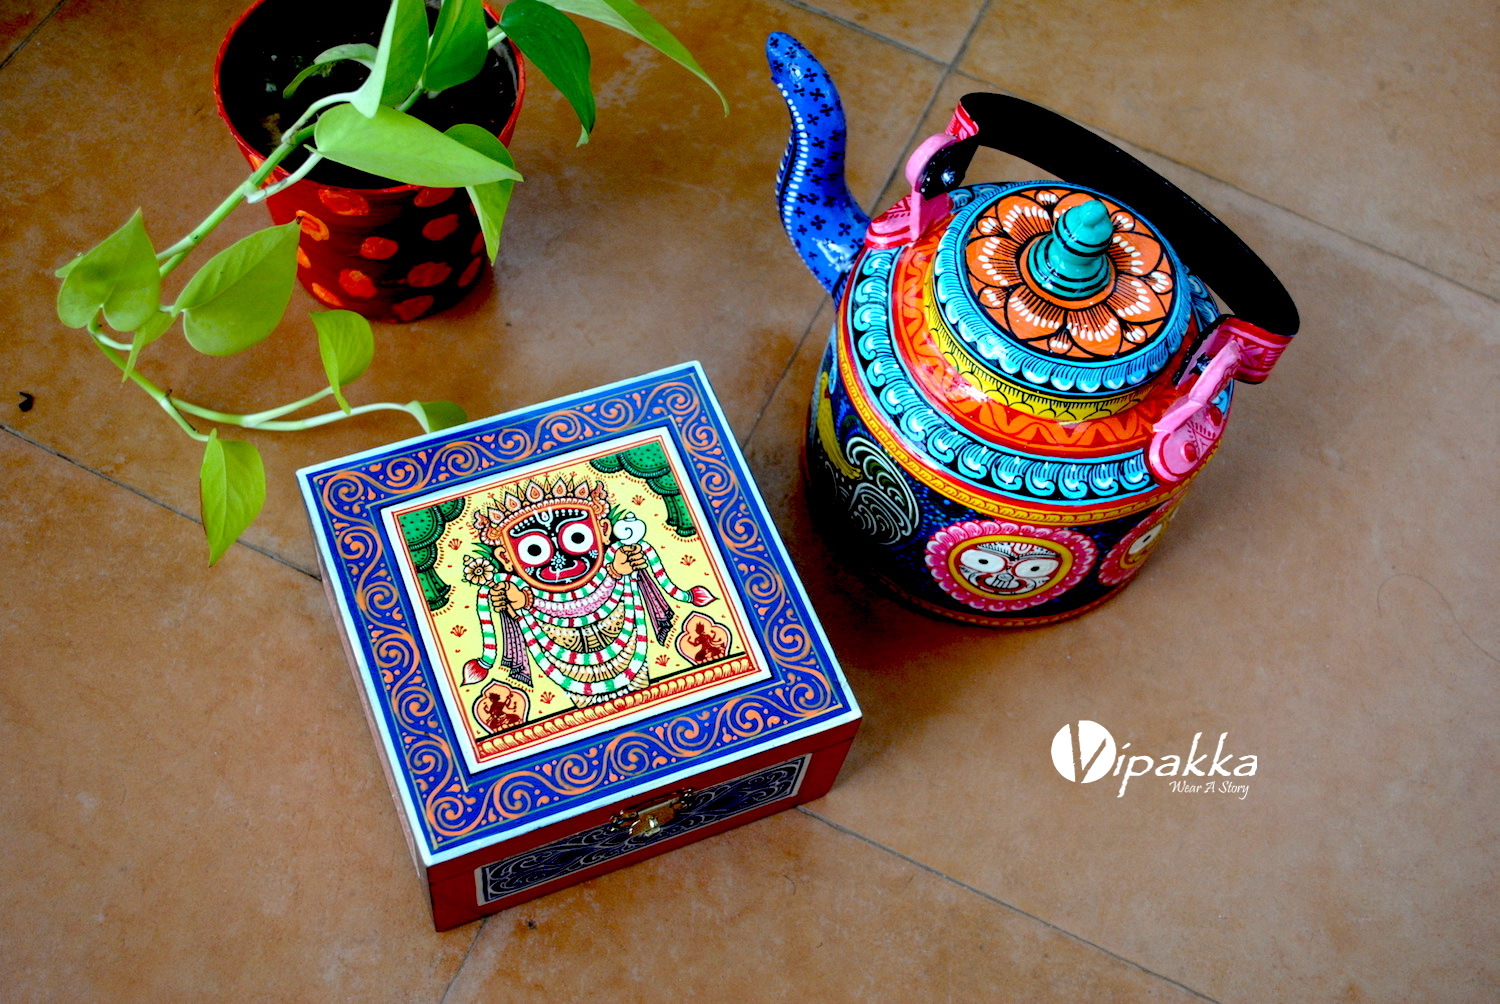 Vipakka-gifting-combo-5 Top 6 Gift Ideas To Make This Diwali Special